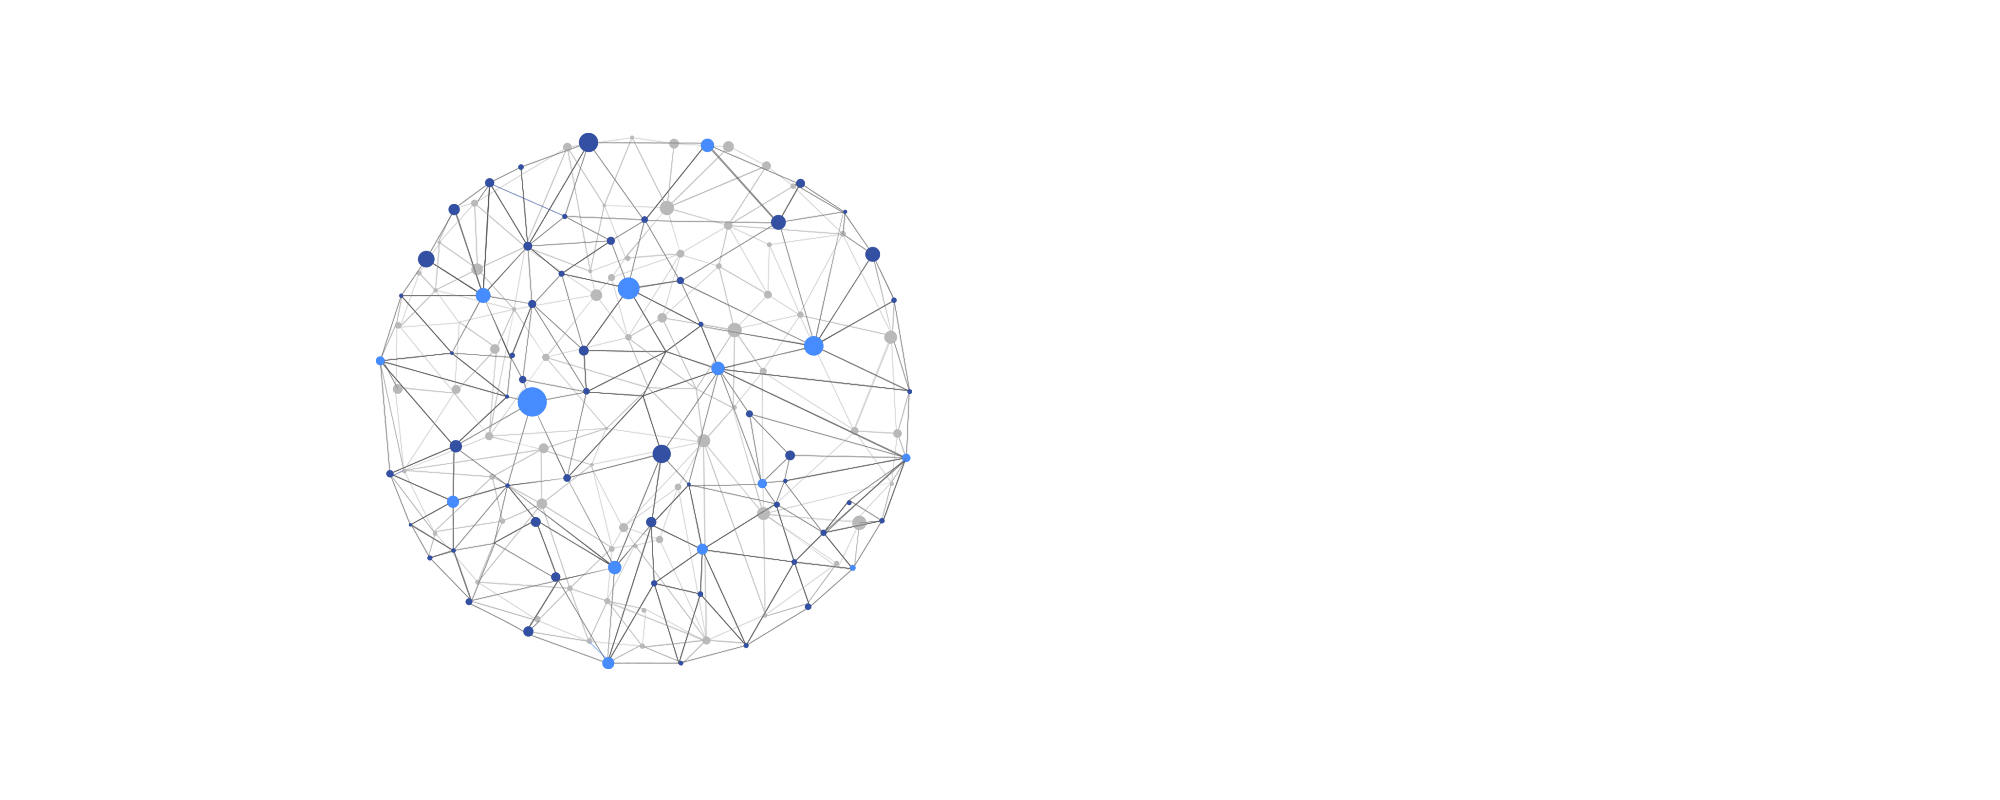 Global network with nodes